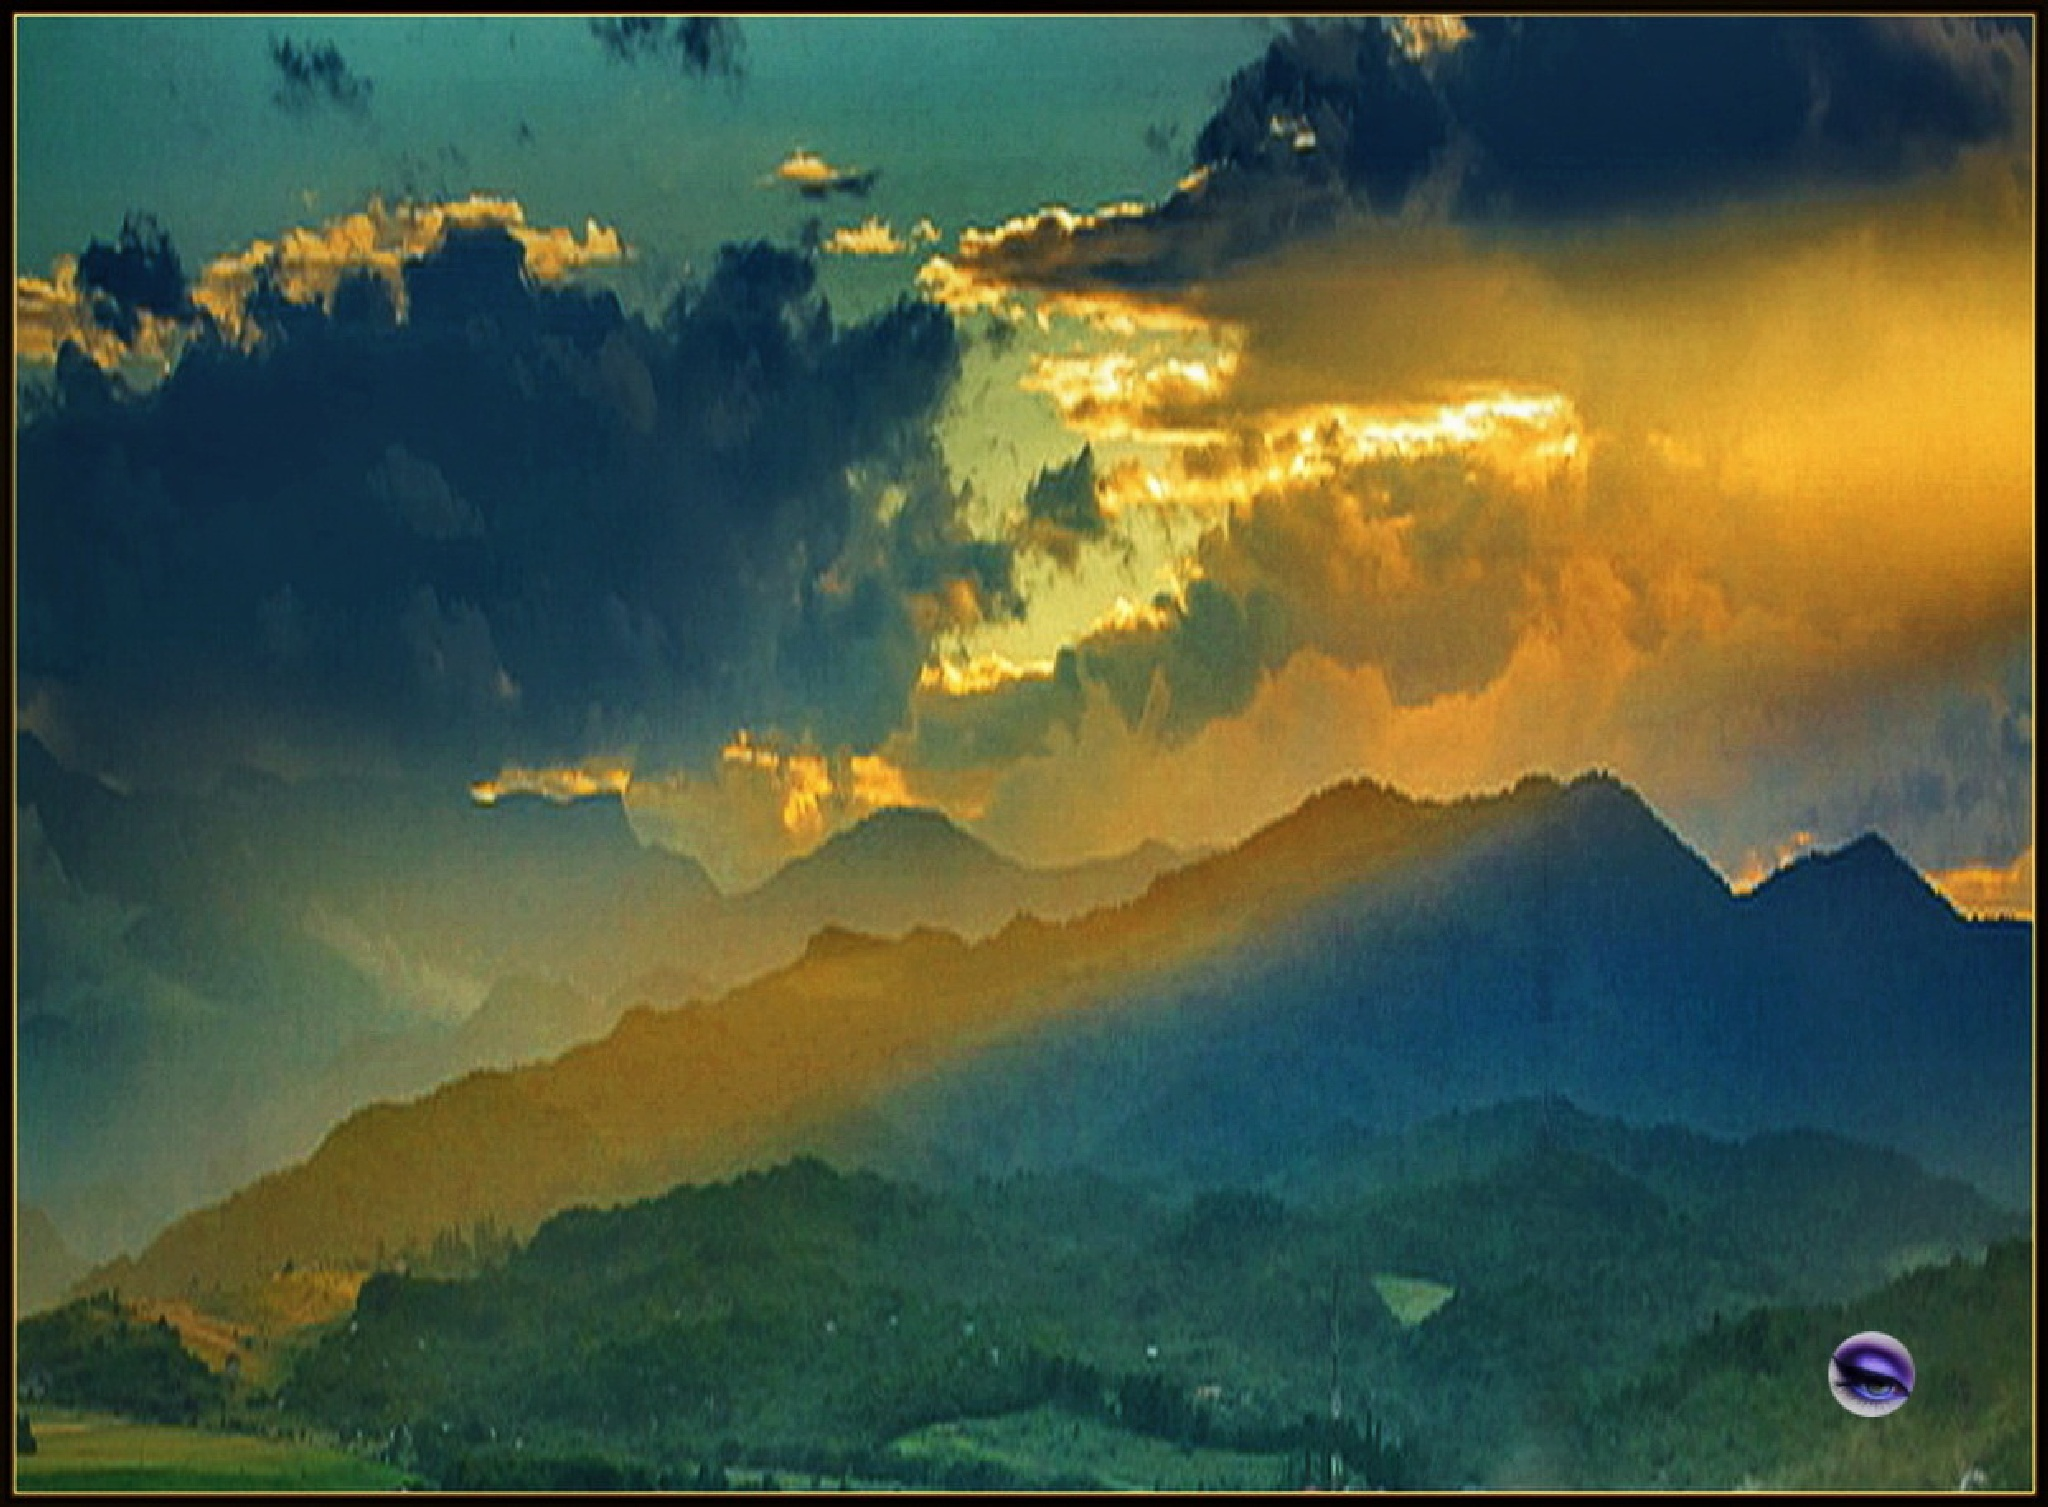 COLORED CLOUDS OVER BEAUTIFUL MOUNTAINS by ShyamalKBanik